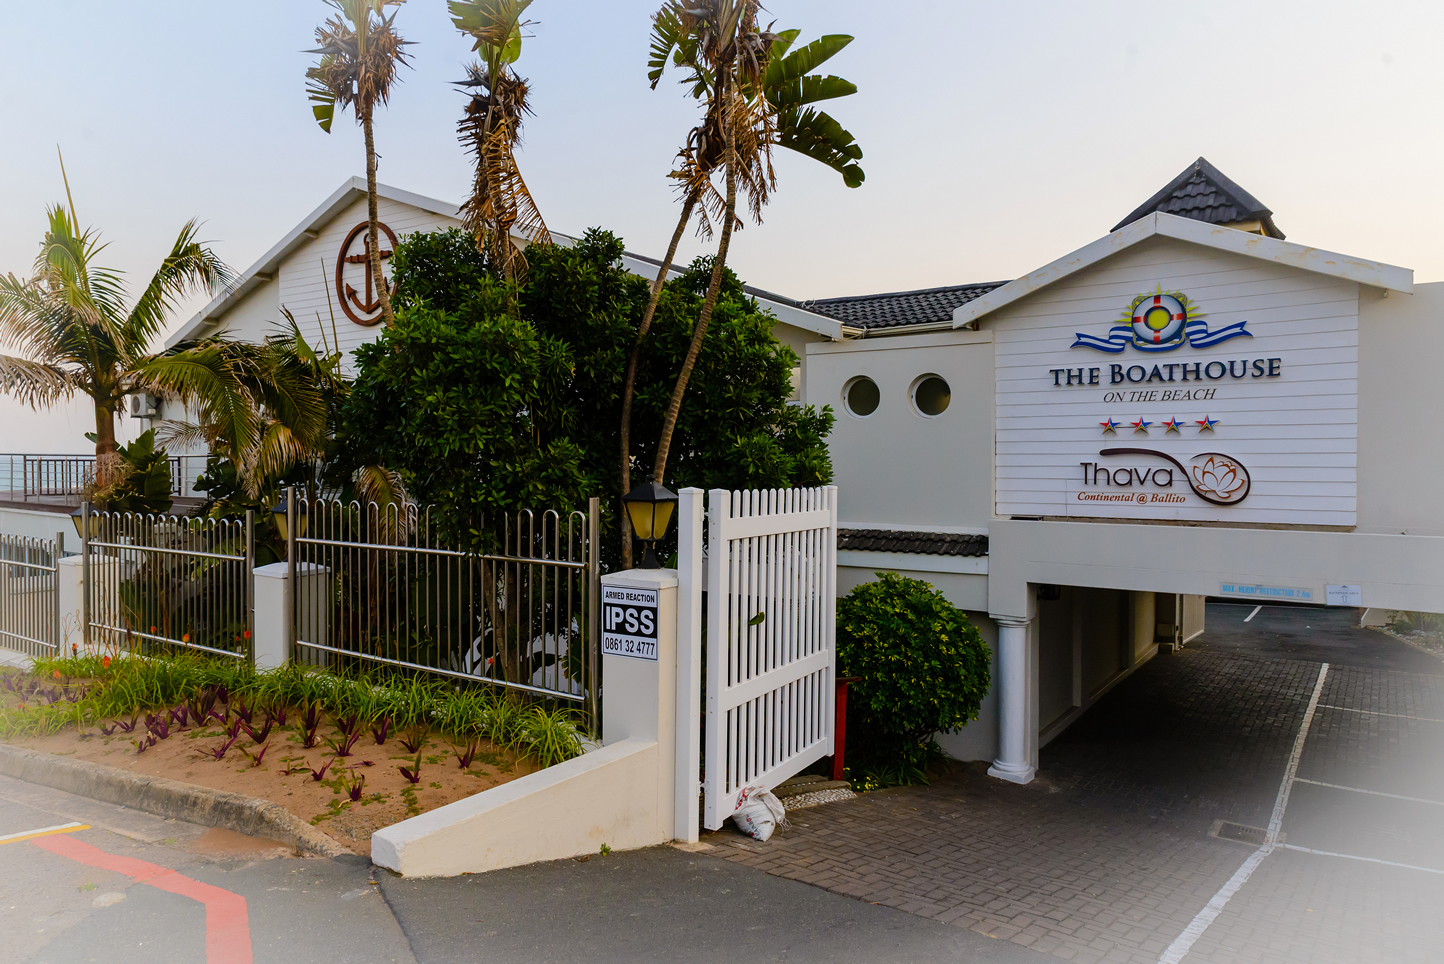 The Boathouse | Luxury Accommodation in Ballito, North of Durban